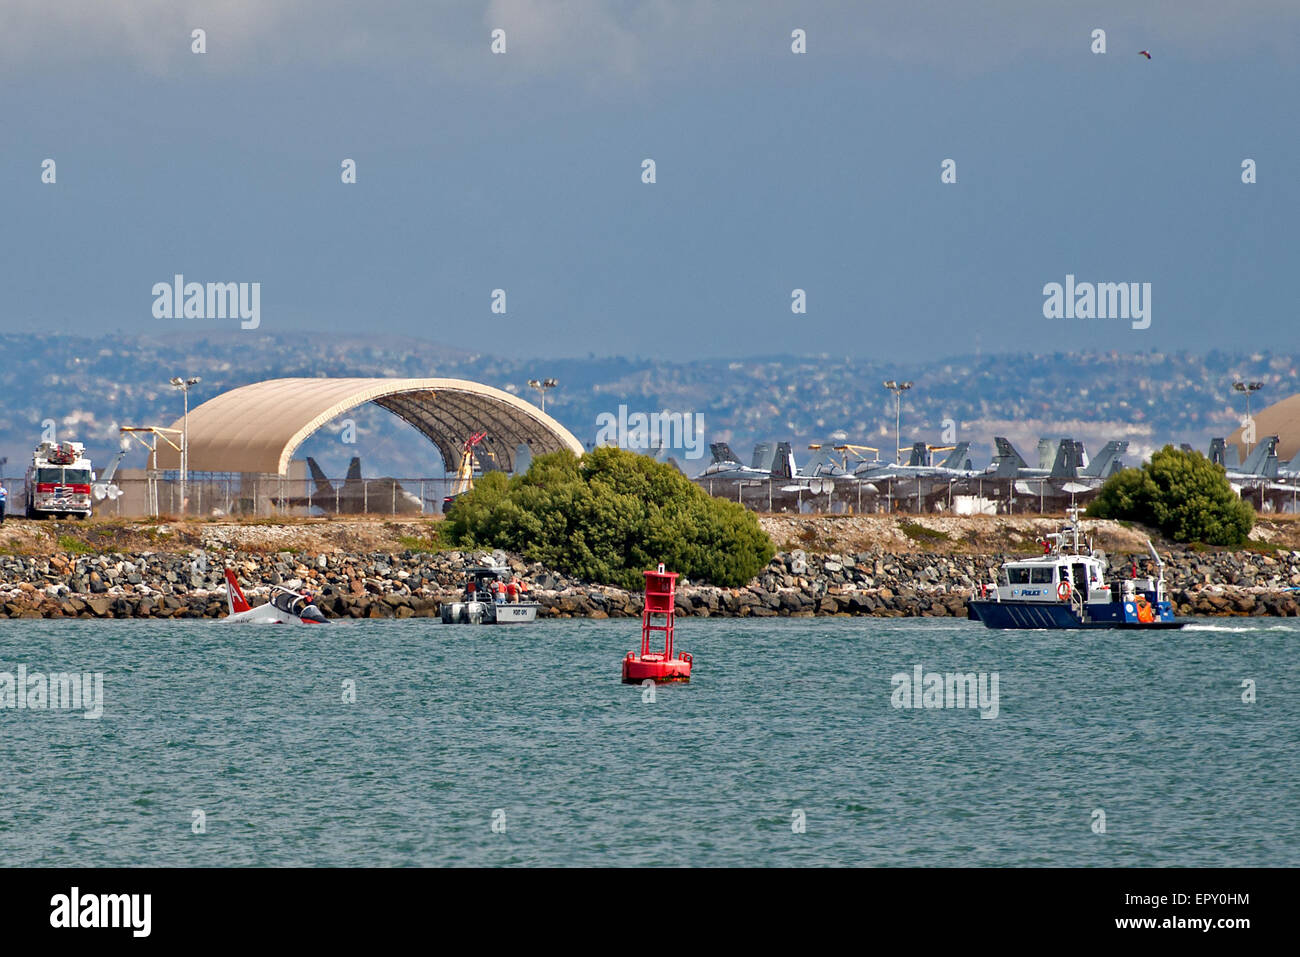 A U.S. Navy T-45C training jet crashed into San Diego Bay while the pilot was attempting to land at Naval Air Station - Stock Image